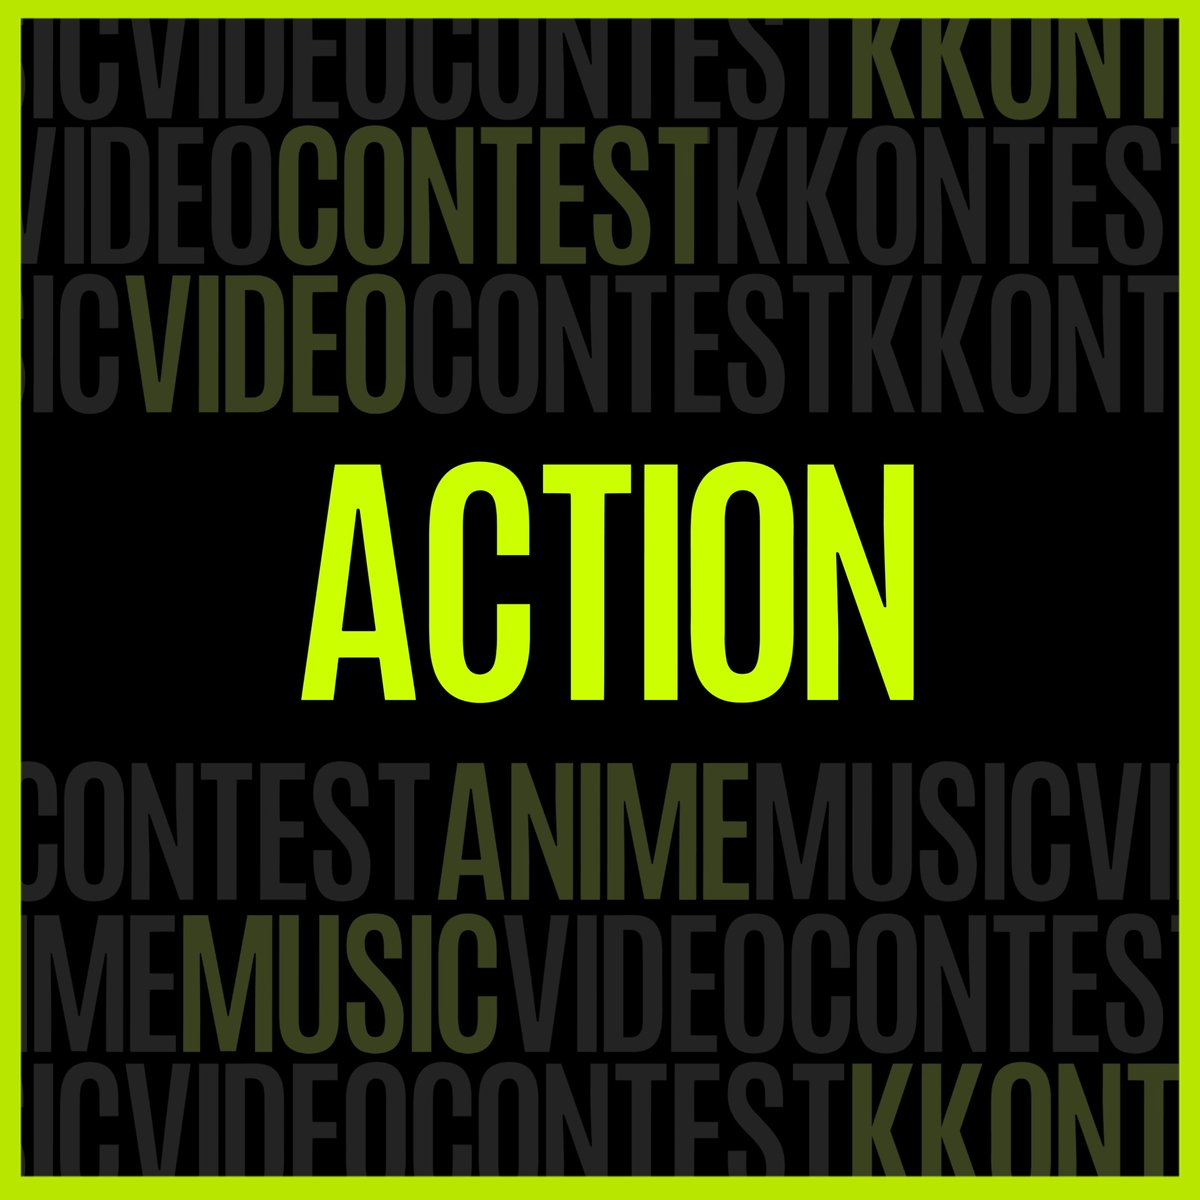 CATEGORY: ACTION  Your AMV must be longer than 1 minute  Videos focused on an adventure, battle, challenge. Anything that gets your pulse pounding!   More info about KKONTEST 2020: https://kkontest.pl/   #kkontest #amvcontest #amv #animemusicvideo #amvcontest2020pic.twitter.com/JKVnjwsBPC